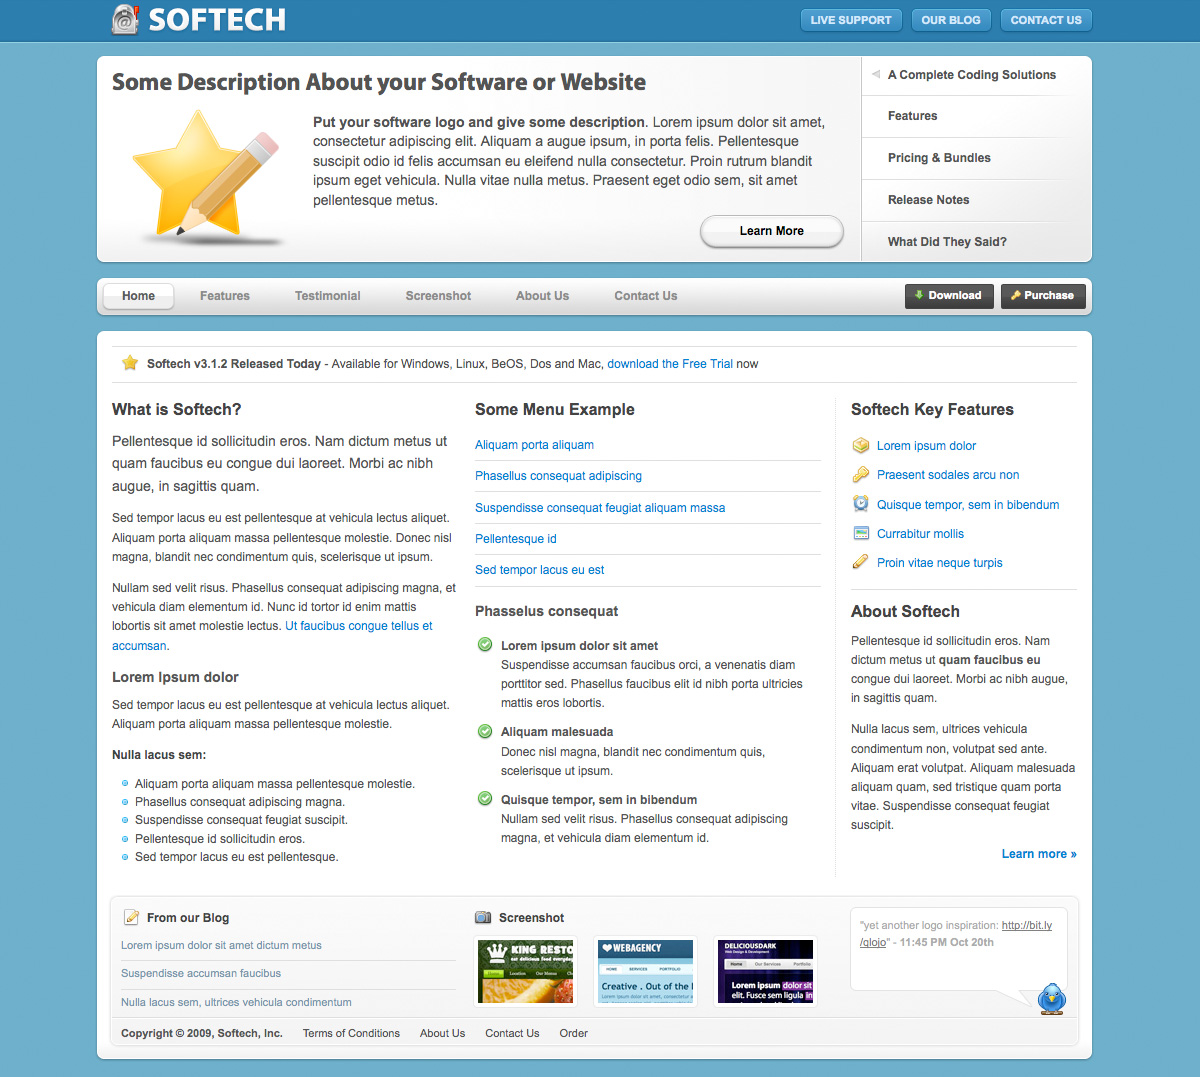 Softech - Software and Hosting Template - Softech Software and Hosting Template - Homepage